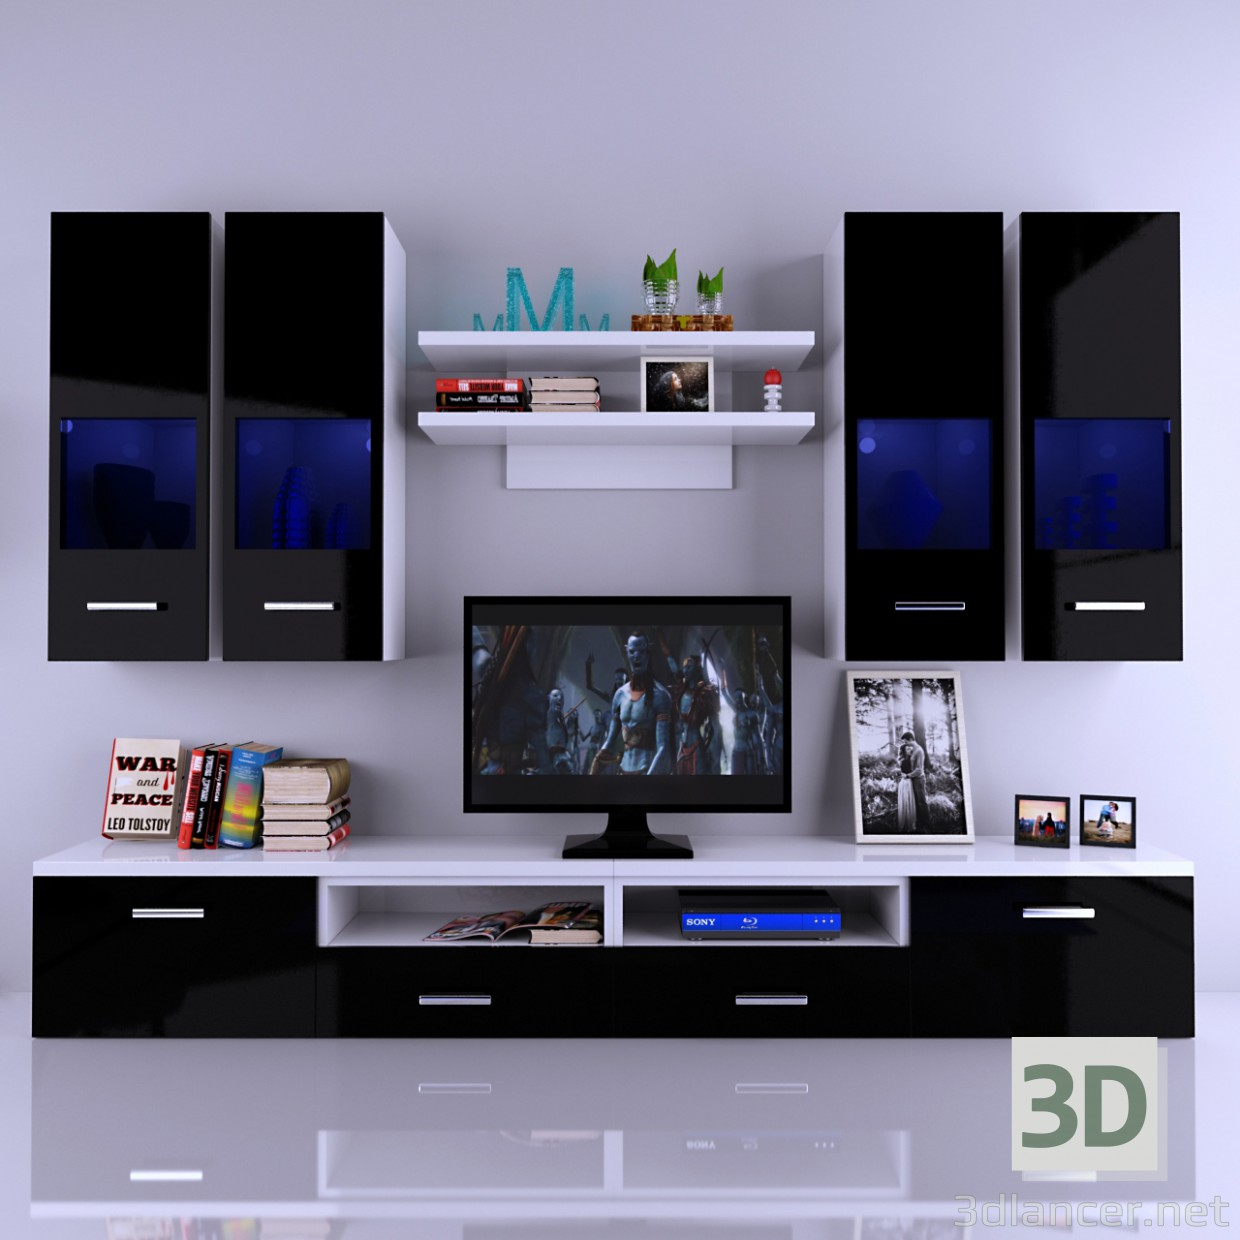 3d model Pared tv-Nero con la decoración. Pared de la TV - vista previa